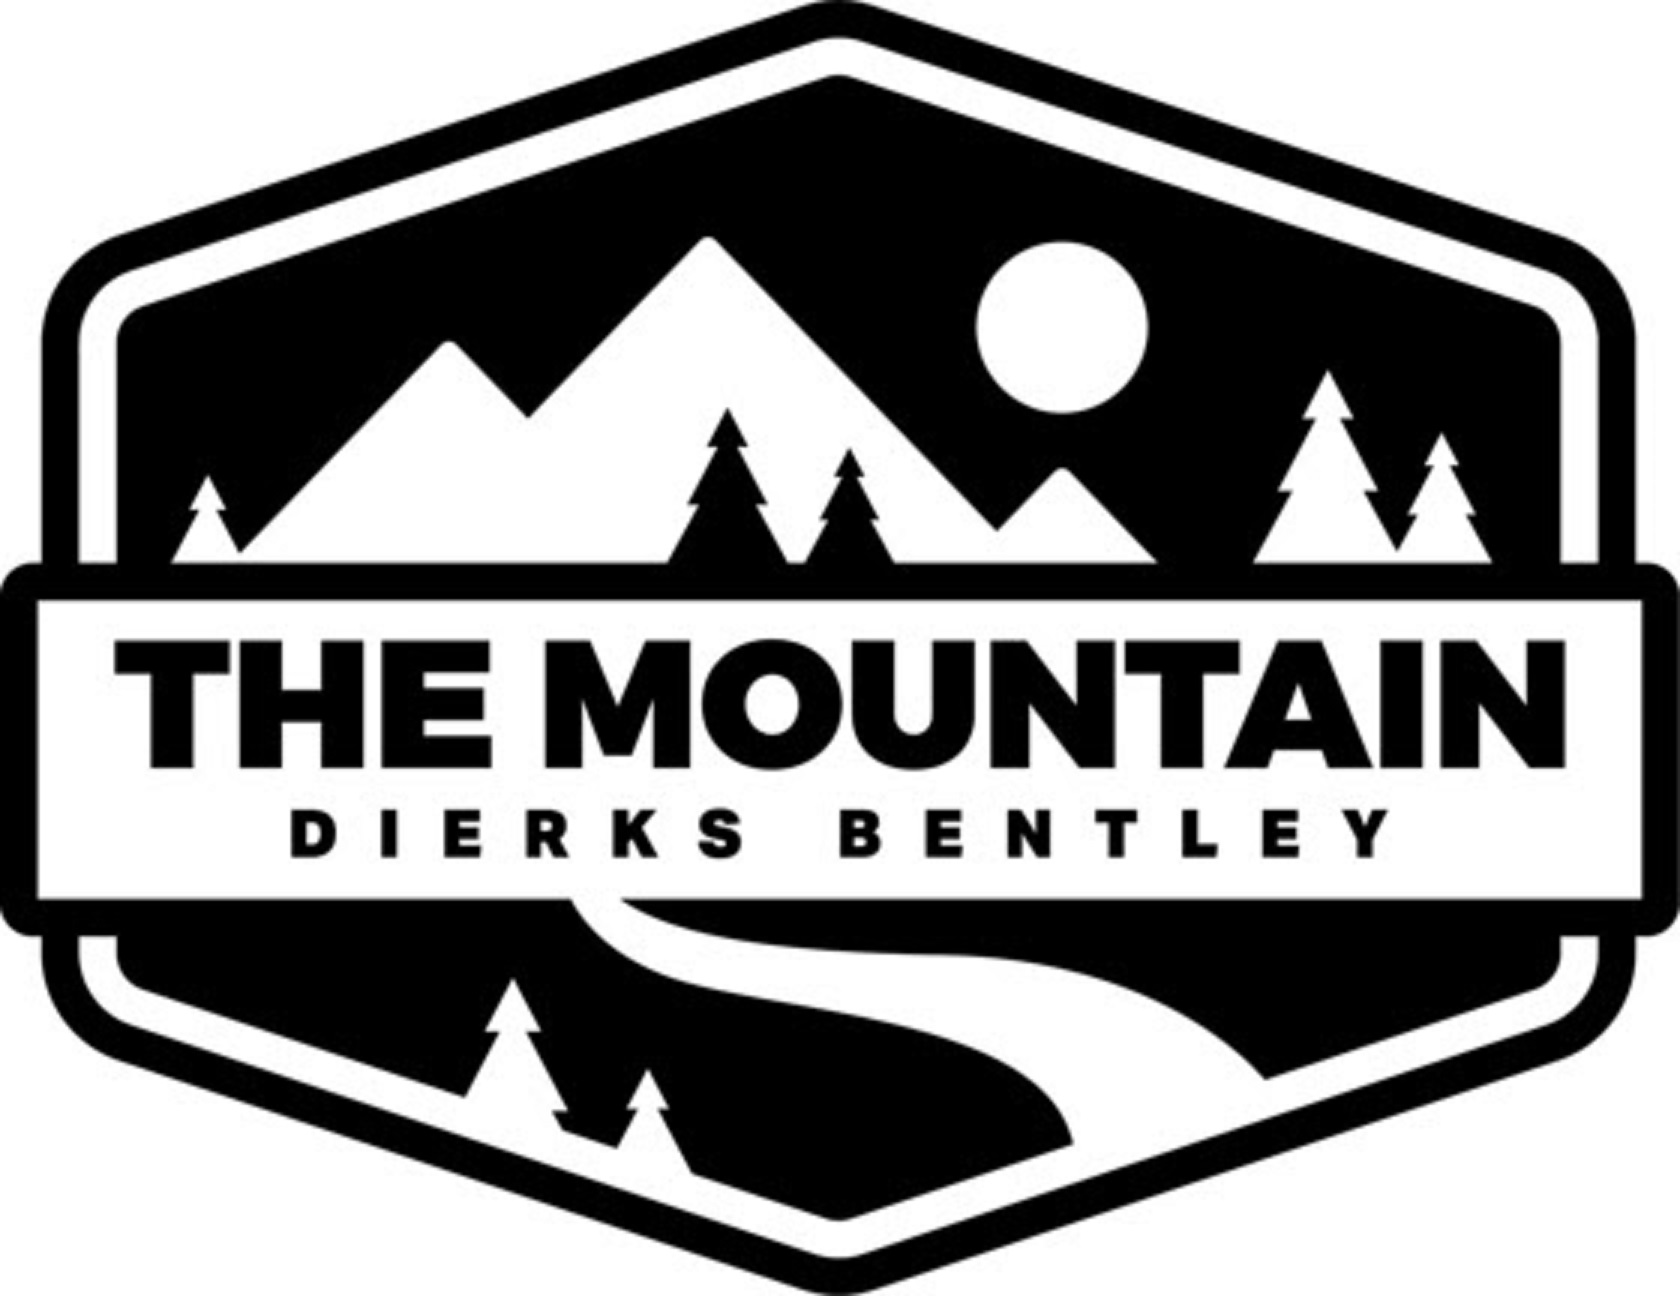 Dierks Bentley Plans for THE MOUNTAIN - New Album in 2018